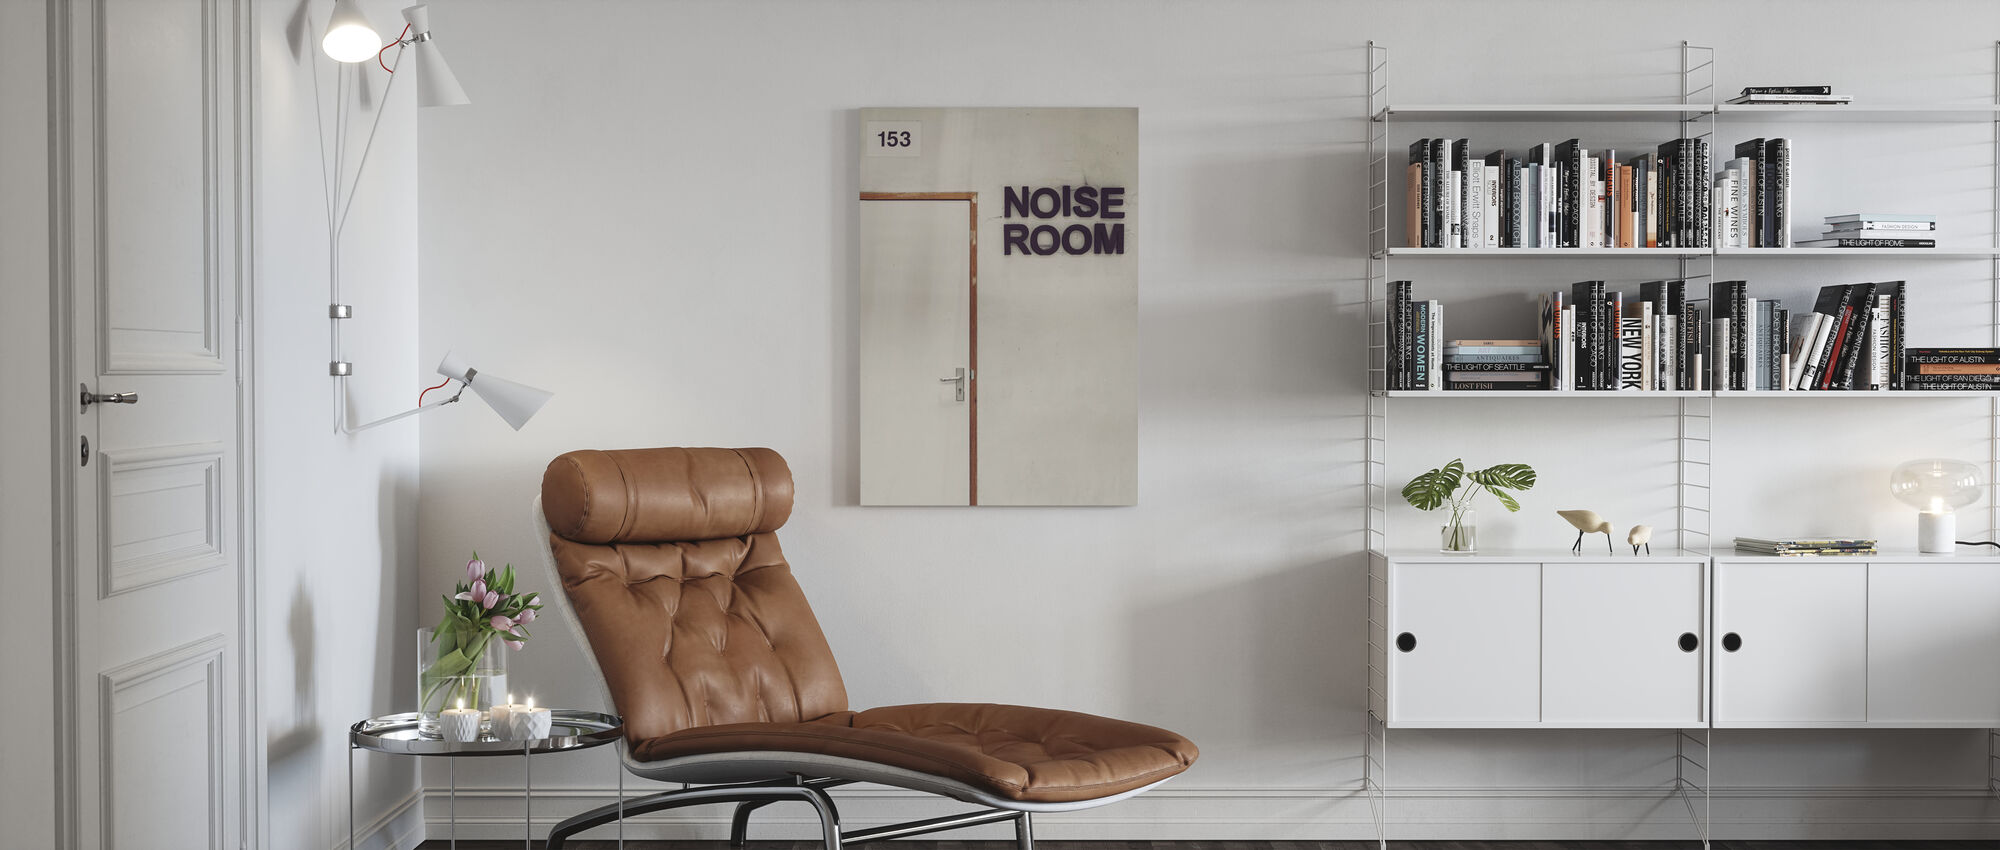 Noise Room Door - Canvas print - Living Room